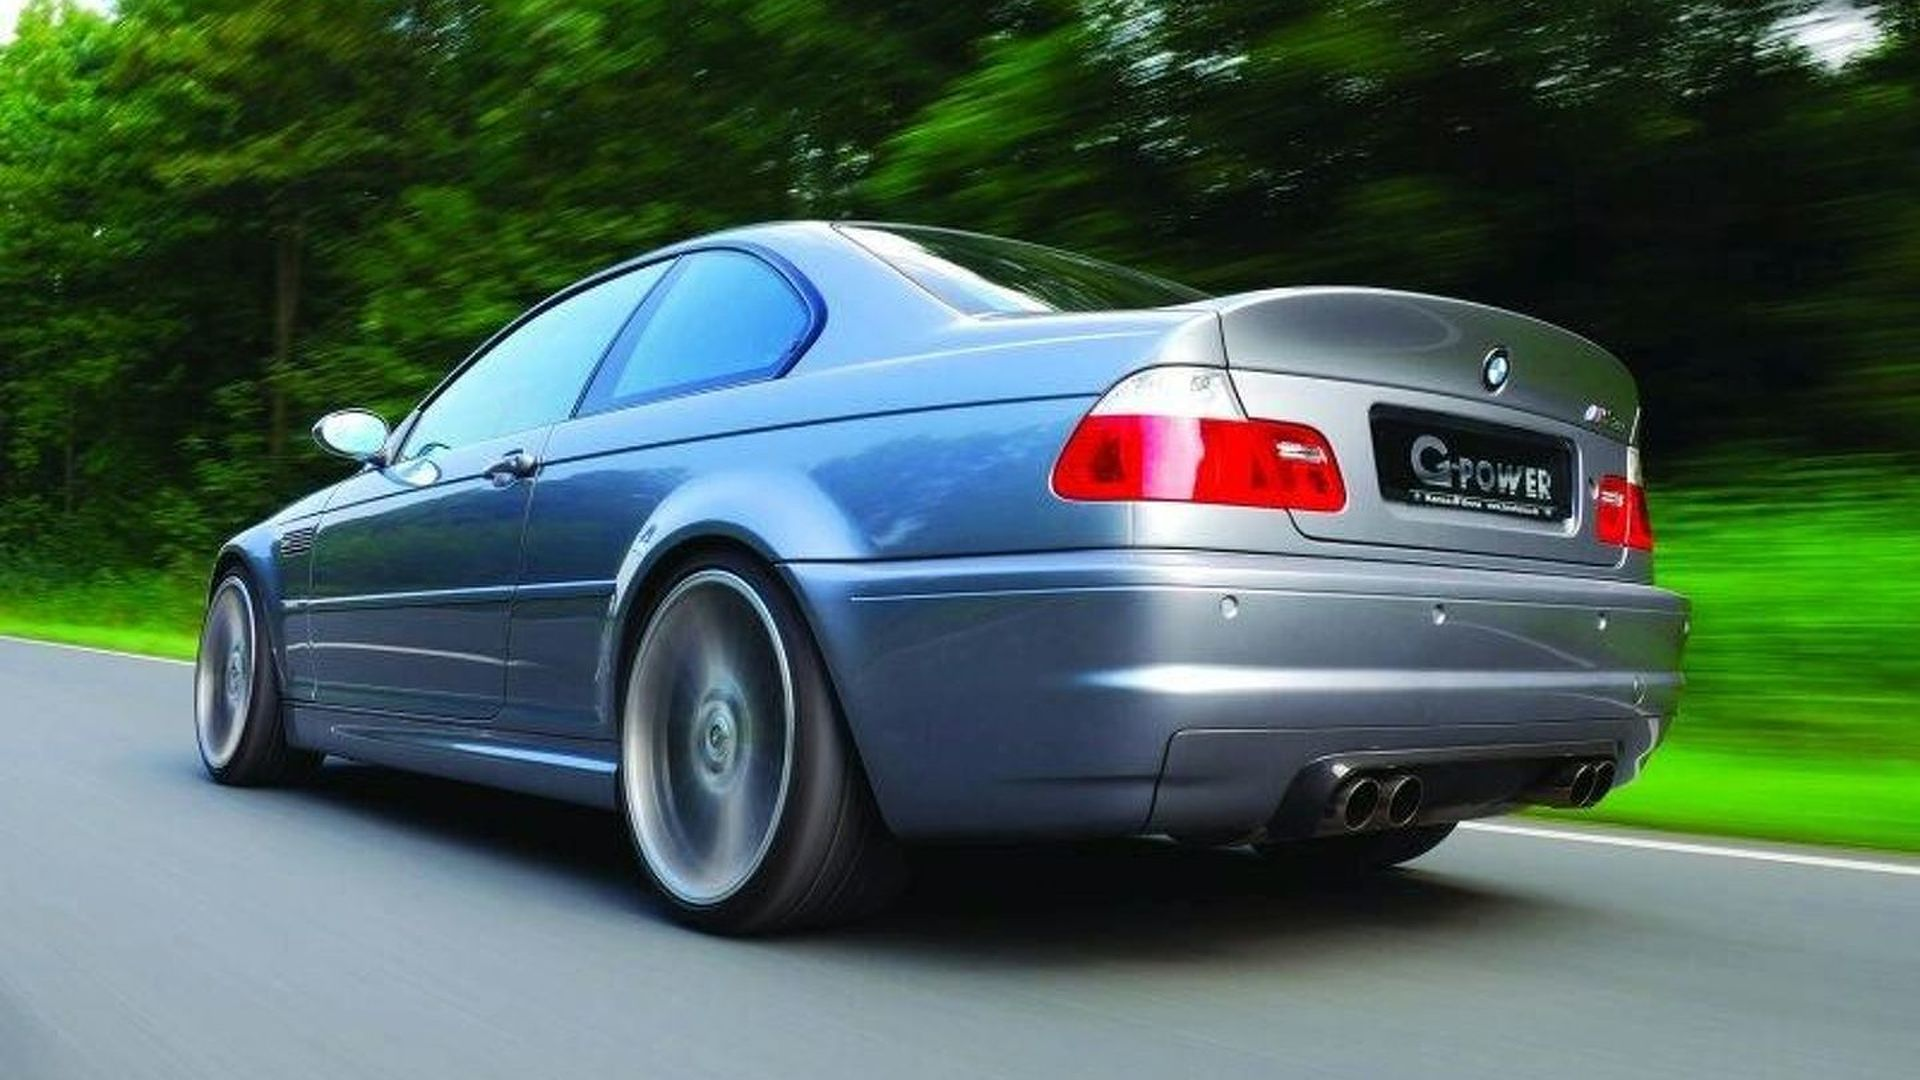 G-POWER BMW M3 CSL E46 with 550 hp V10